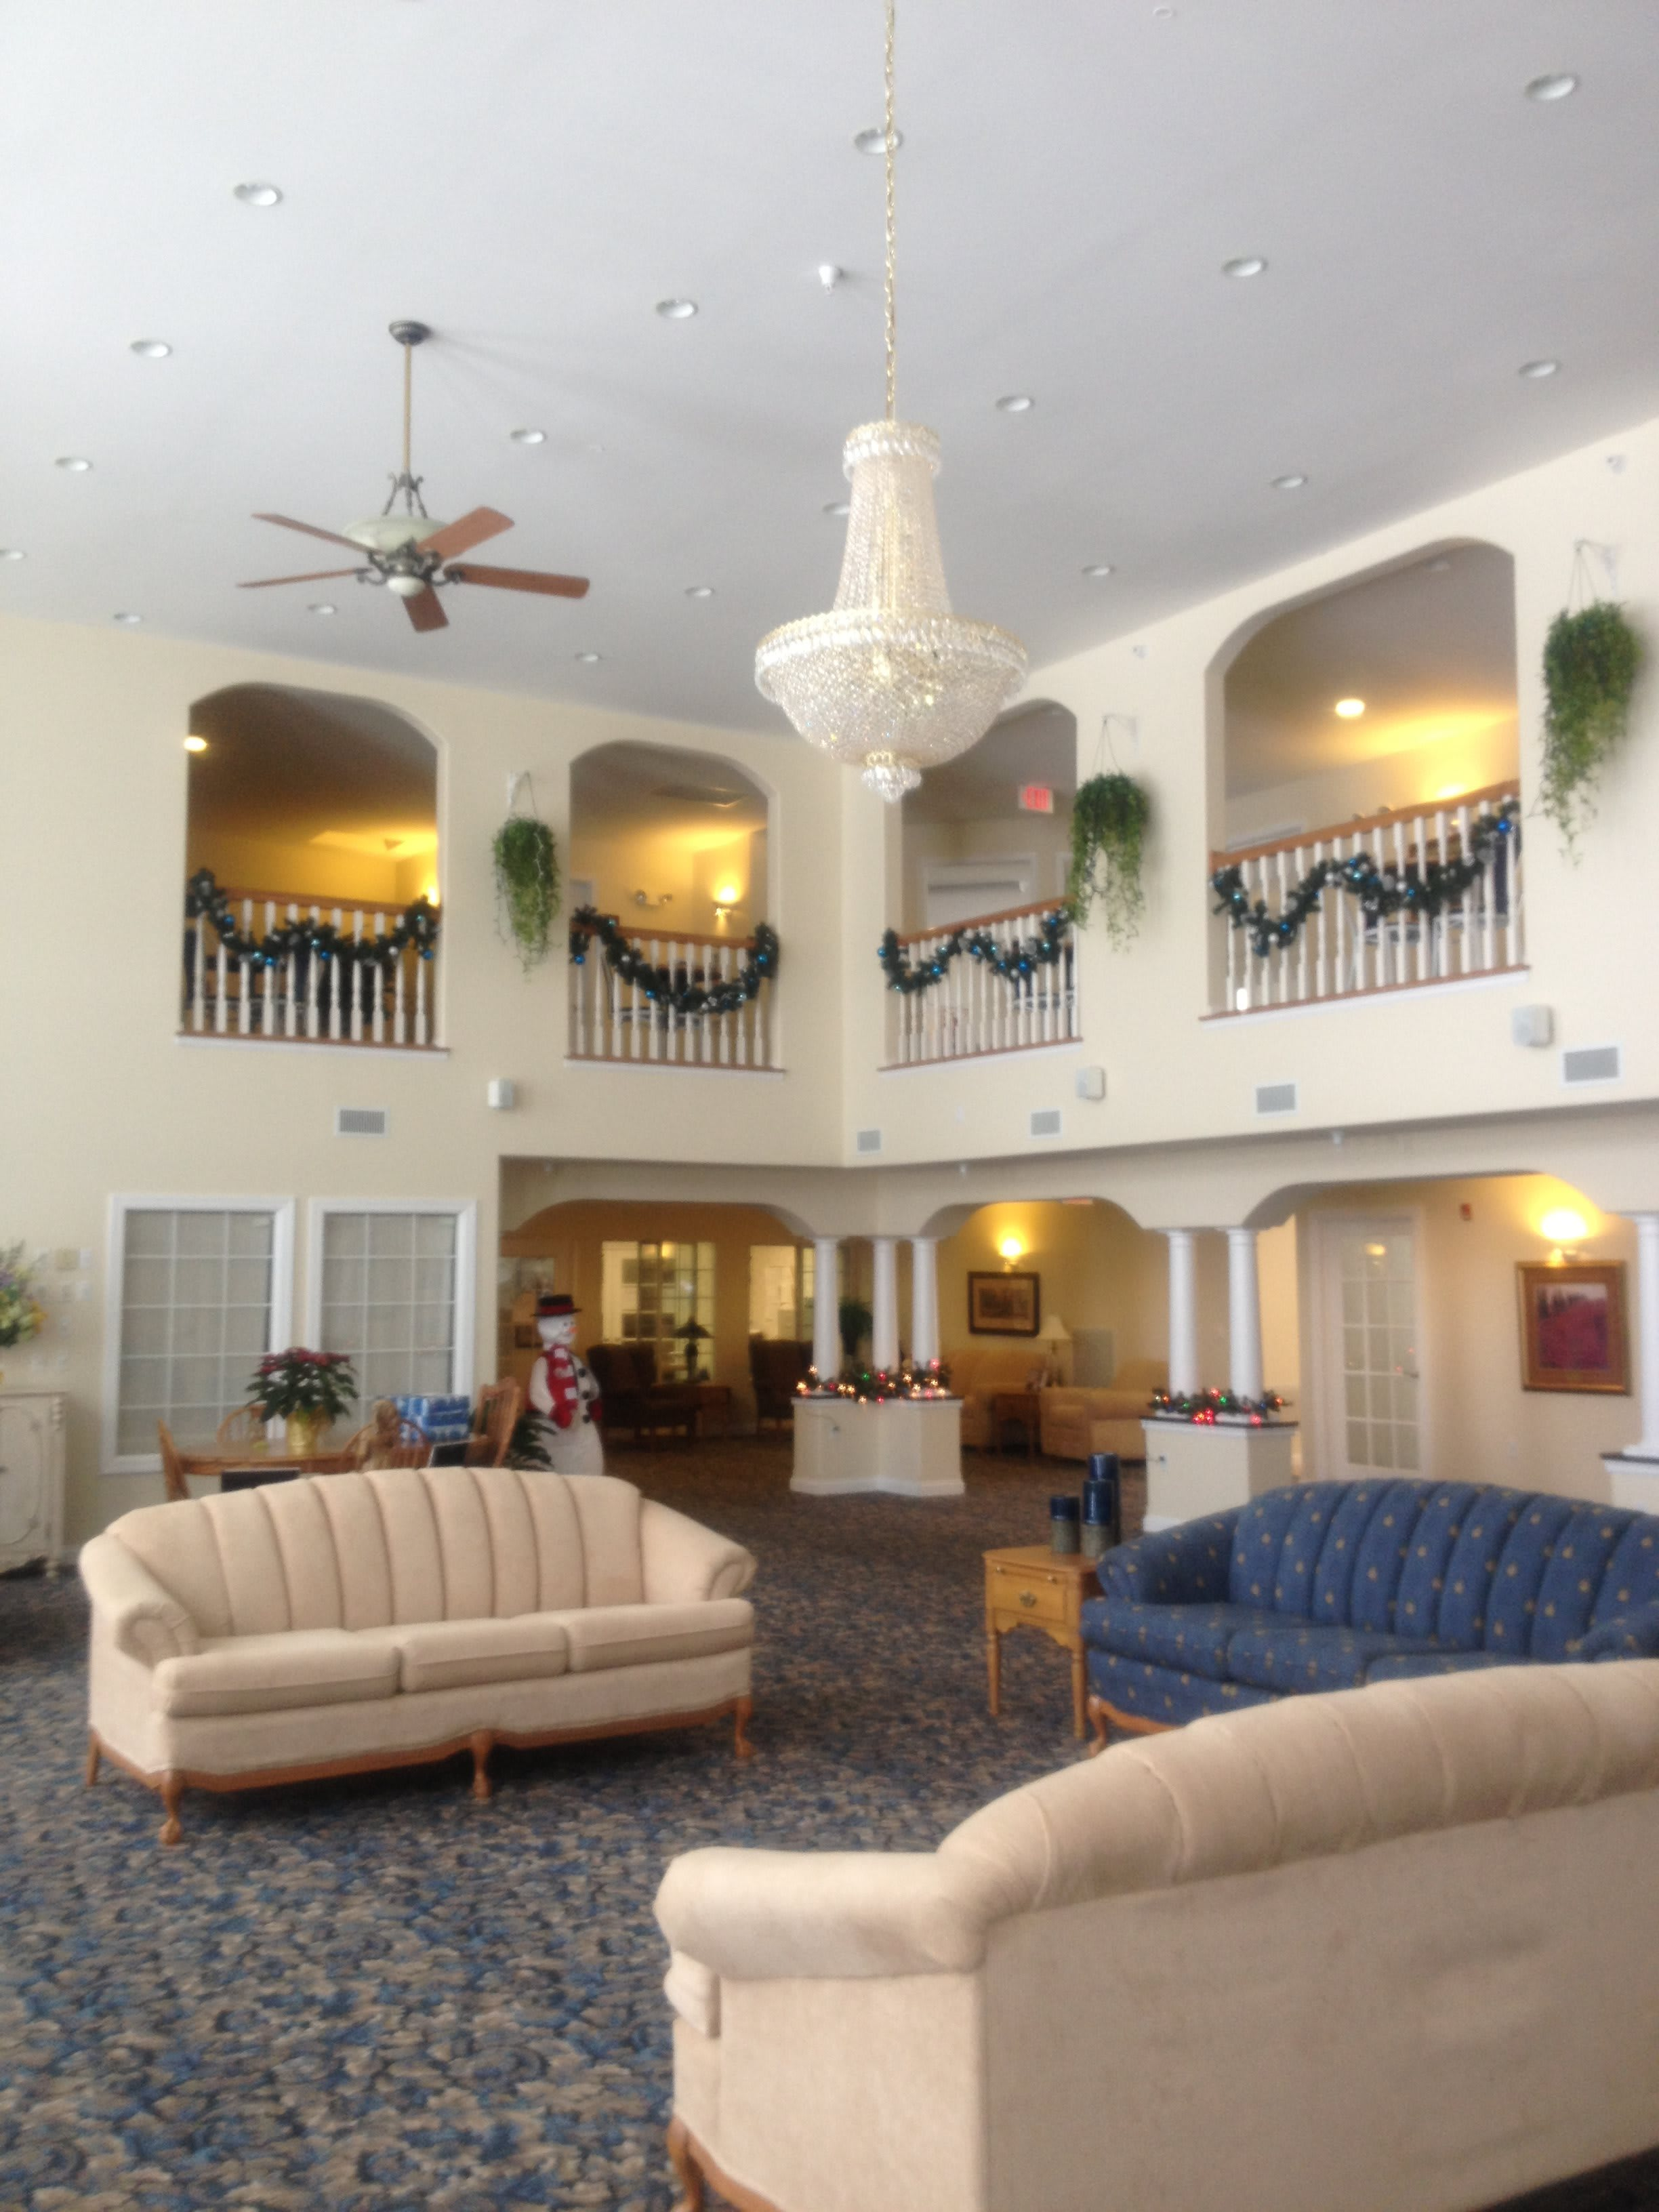 Photo 1 of Beaver Dam Assisted Living